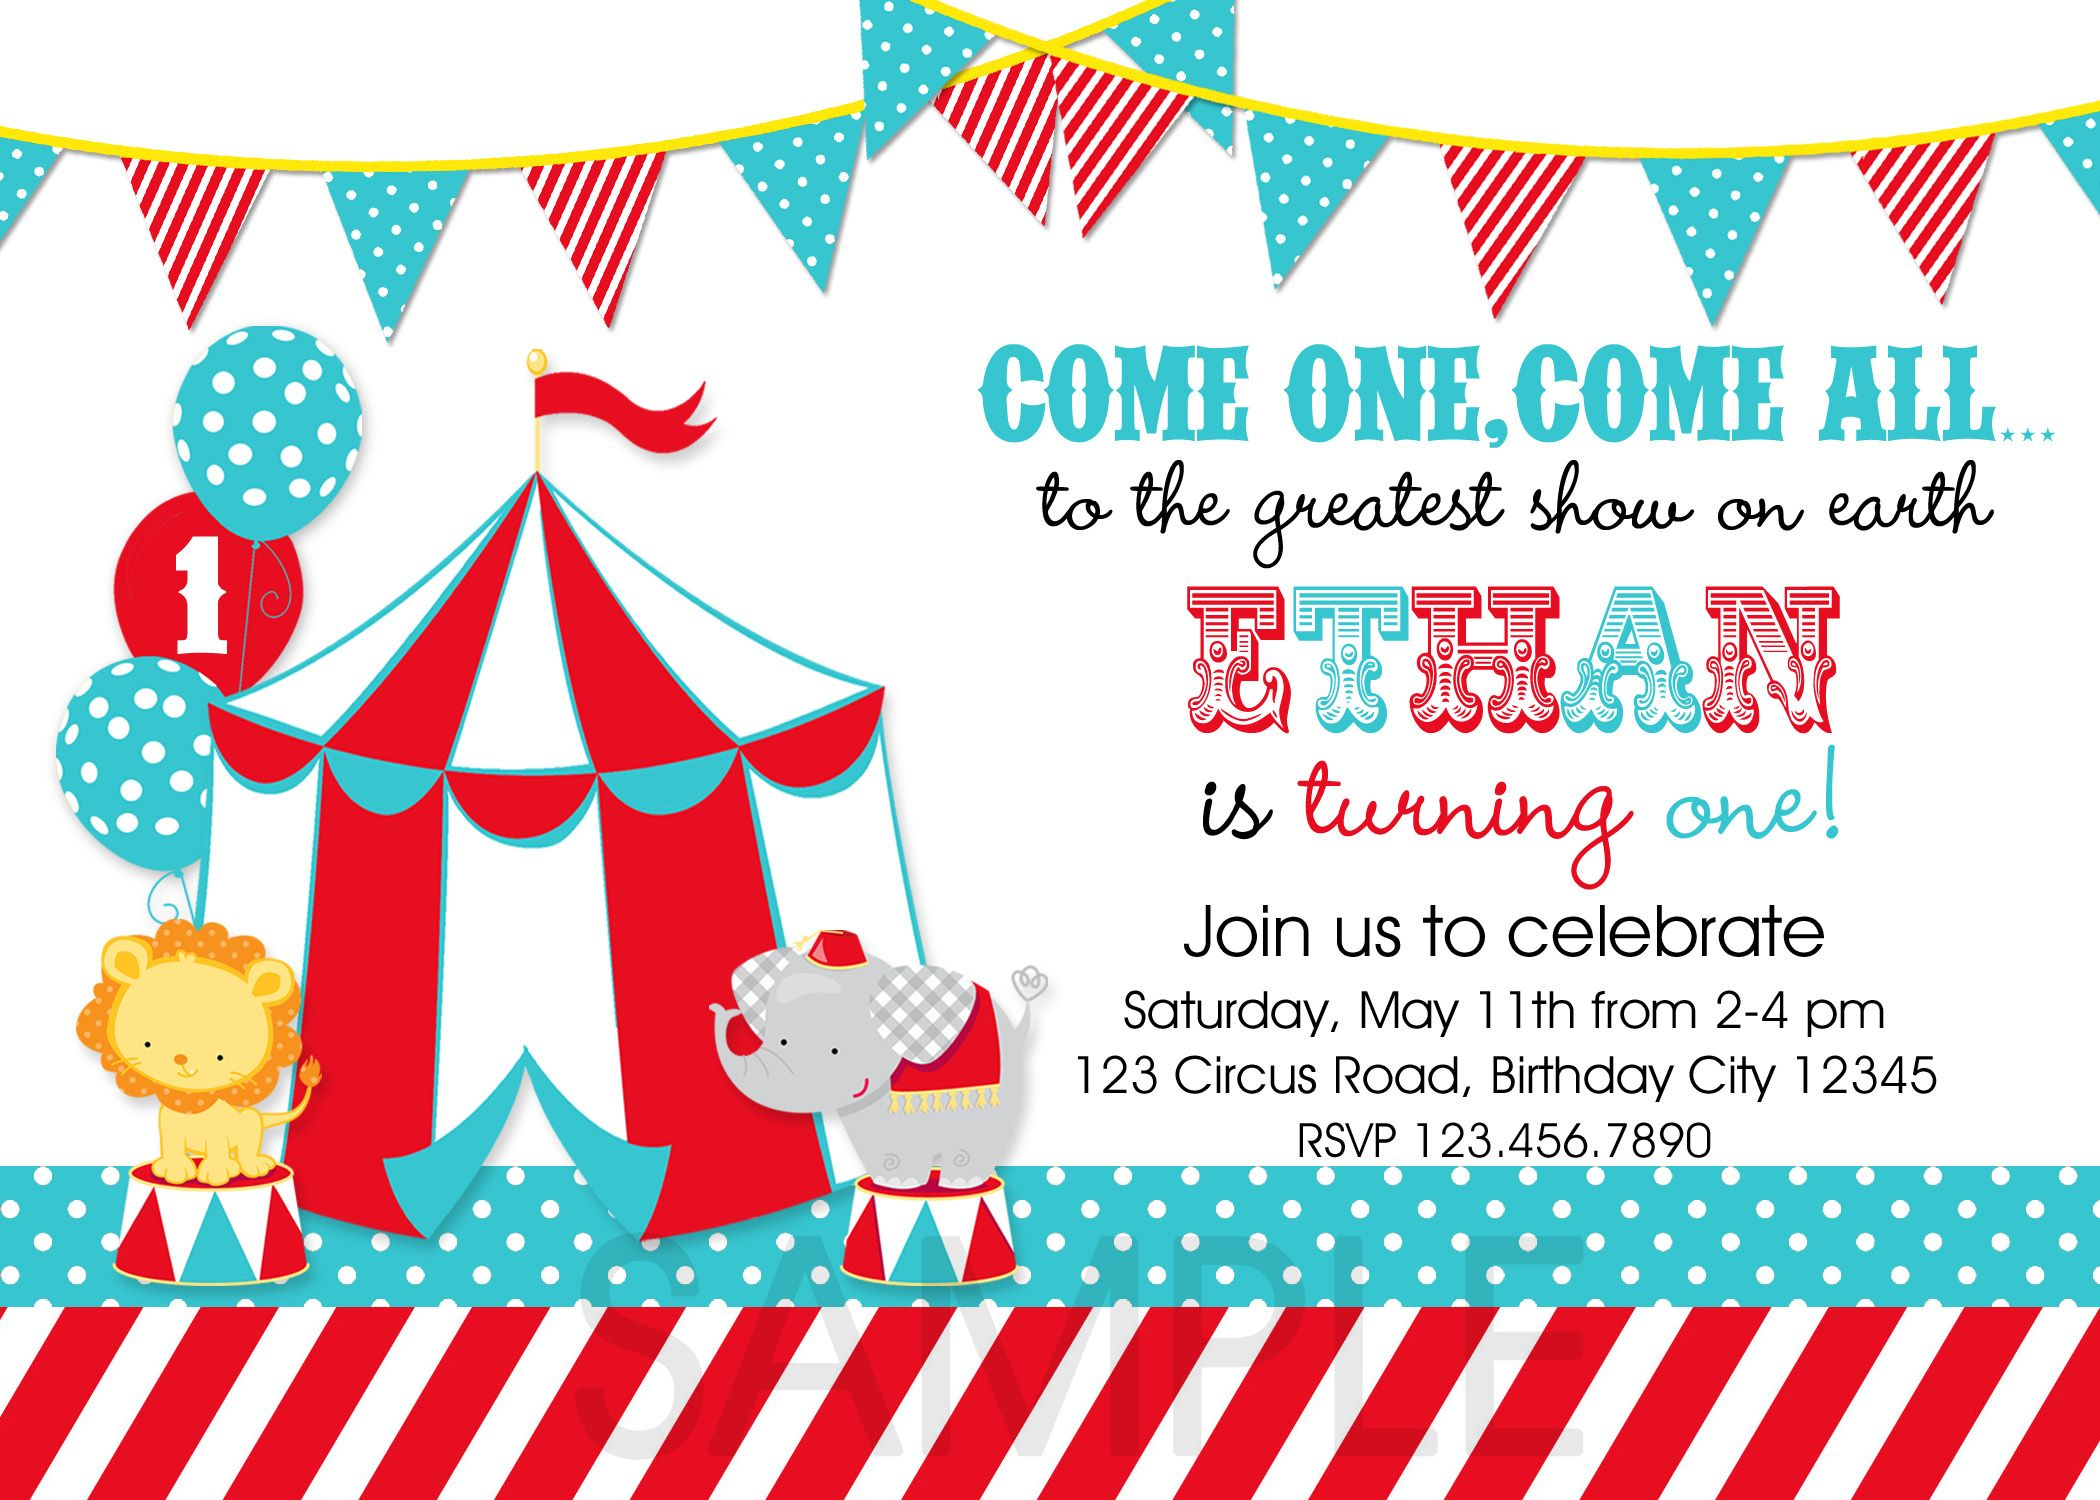 Circus Party Invitations Template ZcfyxW Carnival Dessert Table - Dessert party invitation template